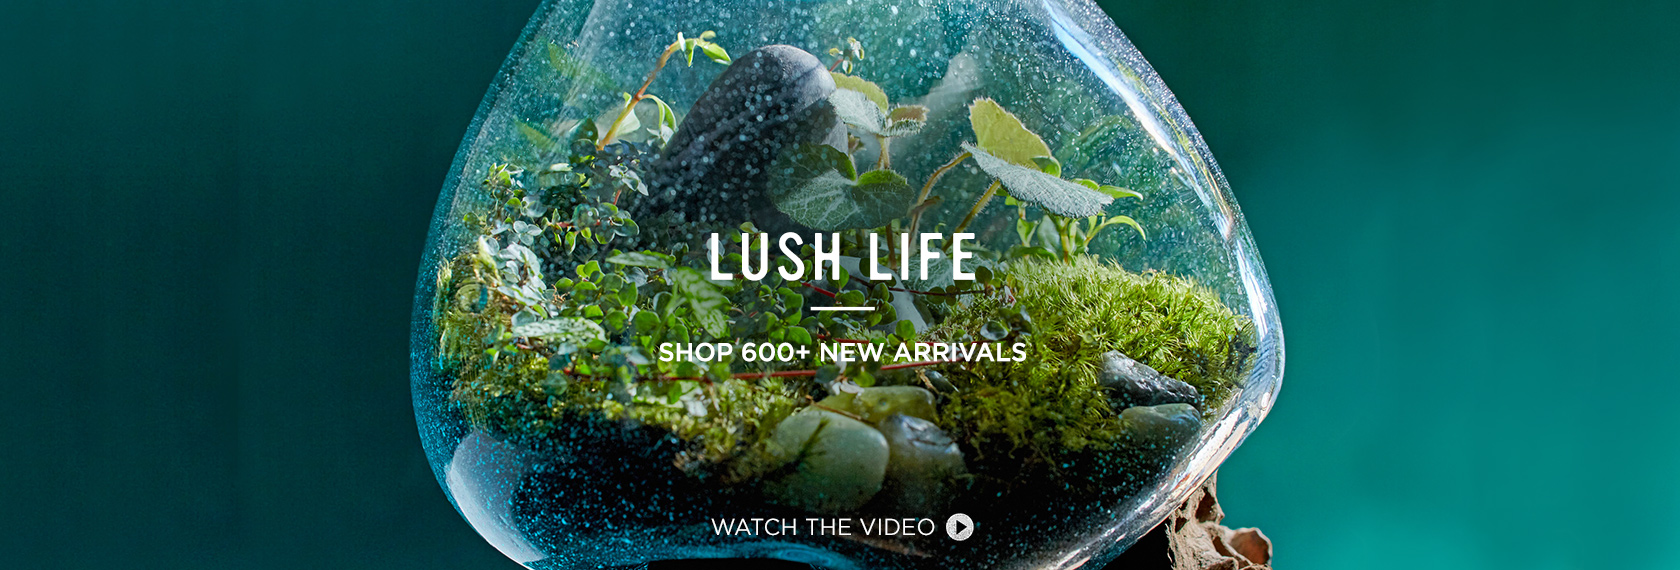 Lush Life - Shop 600+ New Arrivals